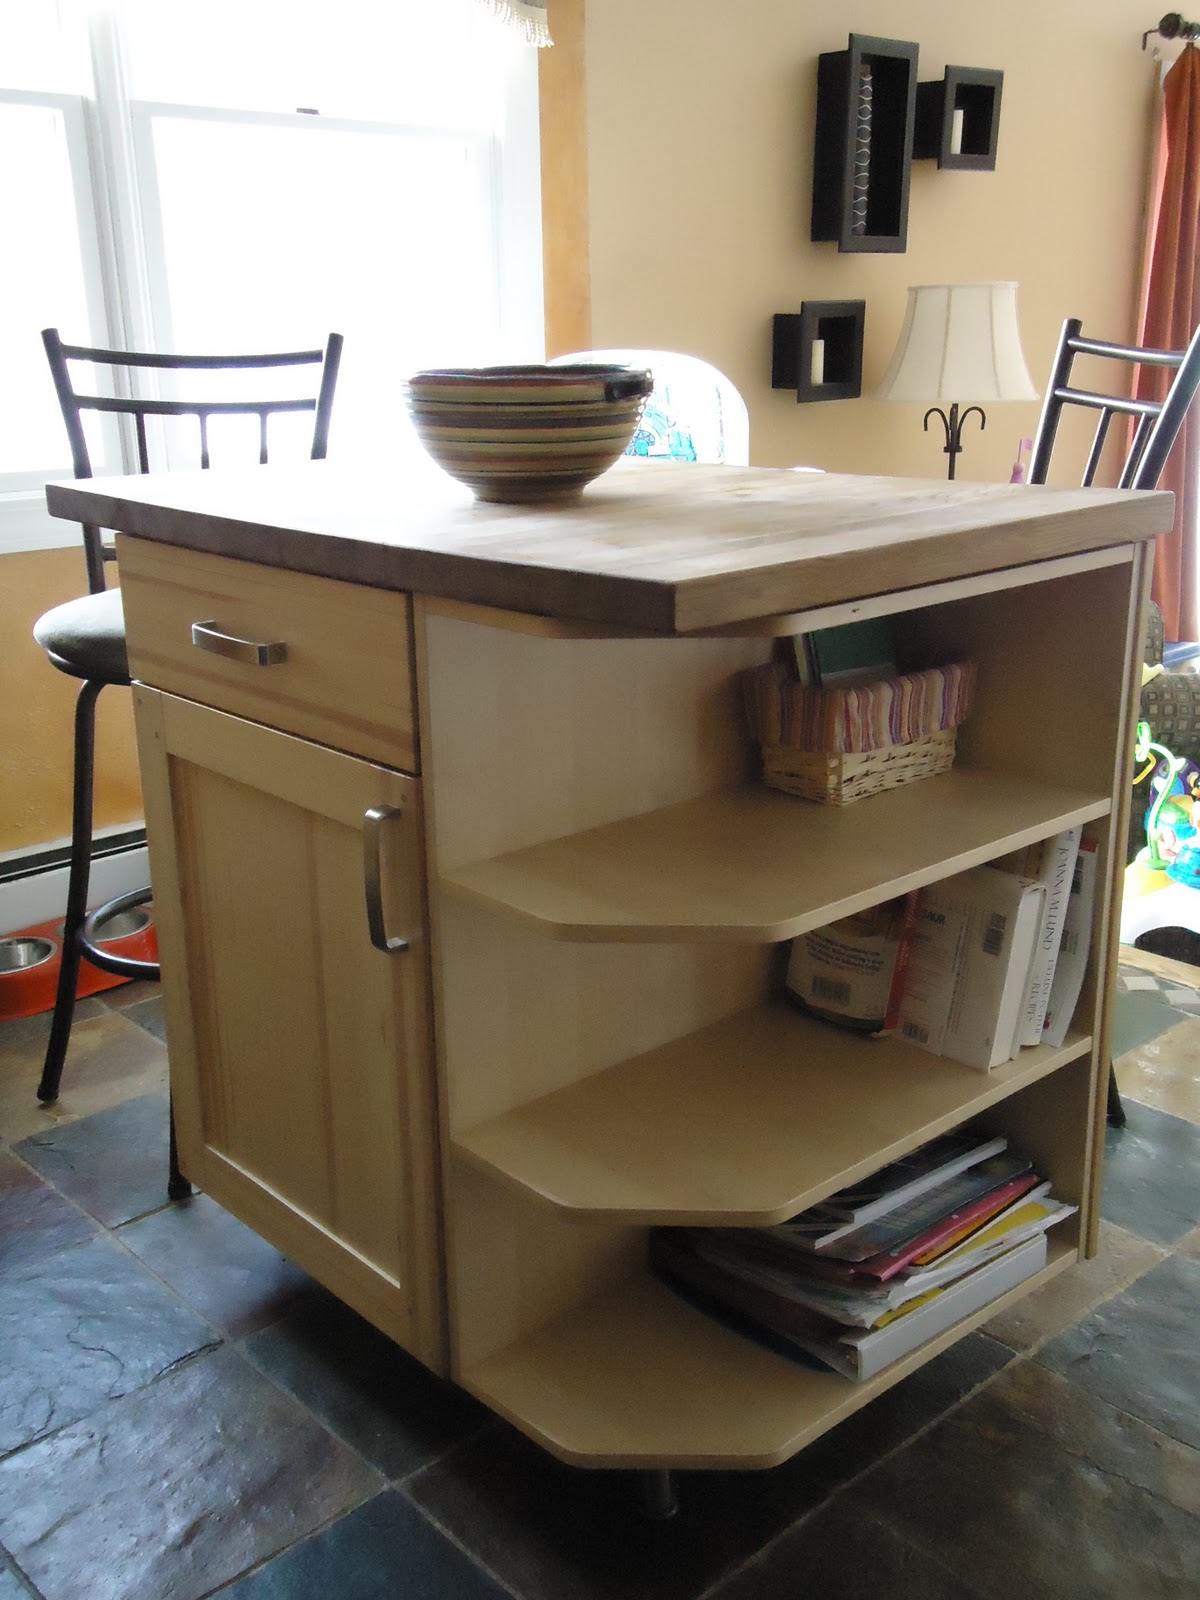 Kitchen Archives Page 18 Of 25 Ikea Hackers # Meuble Angle Varde Ikea